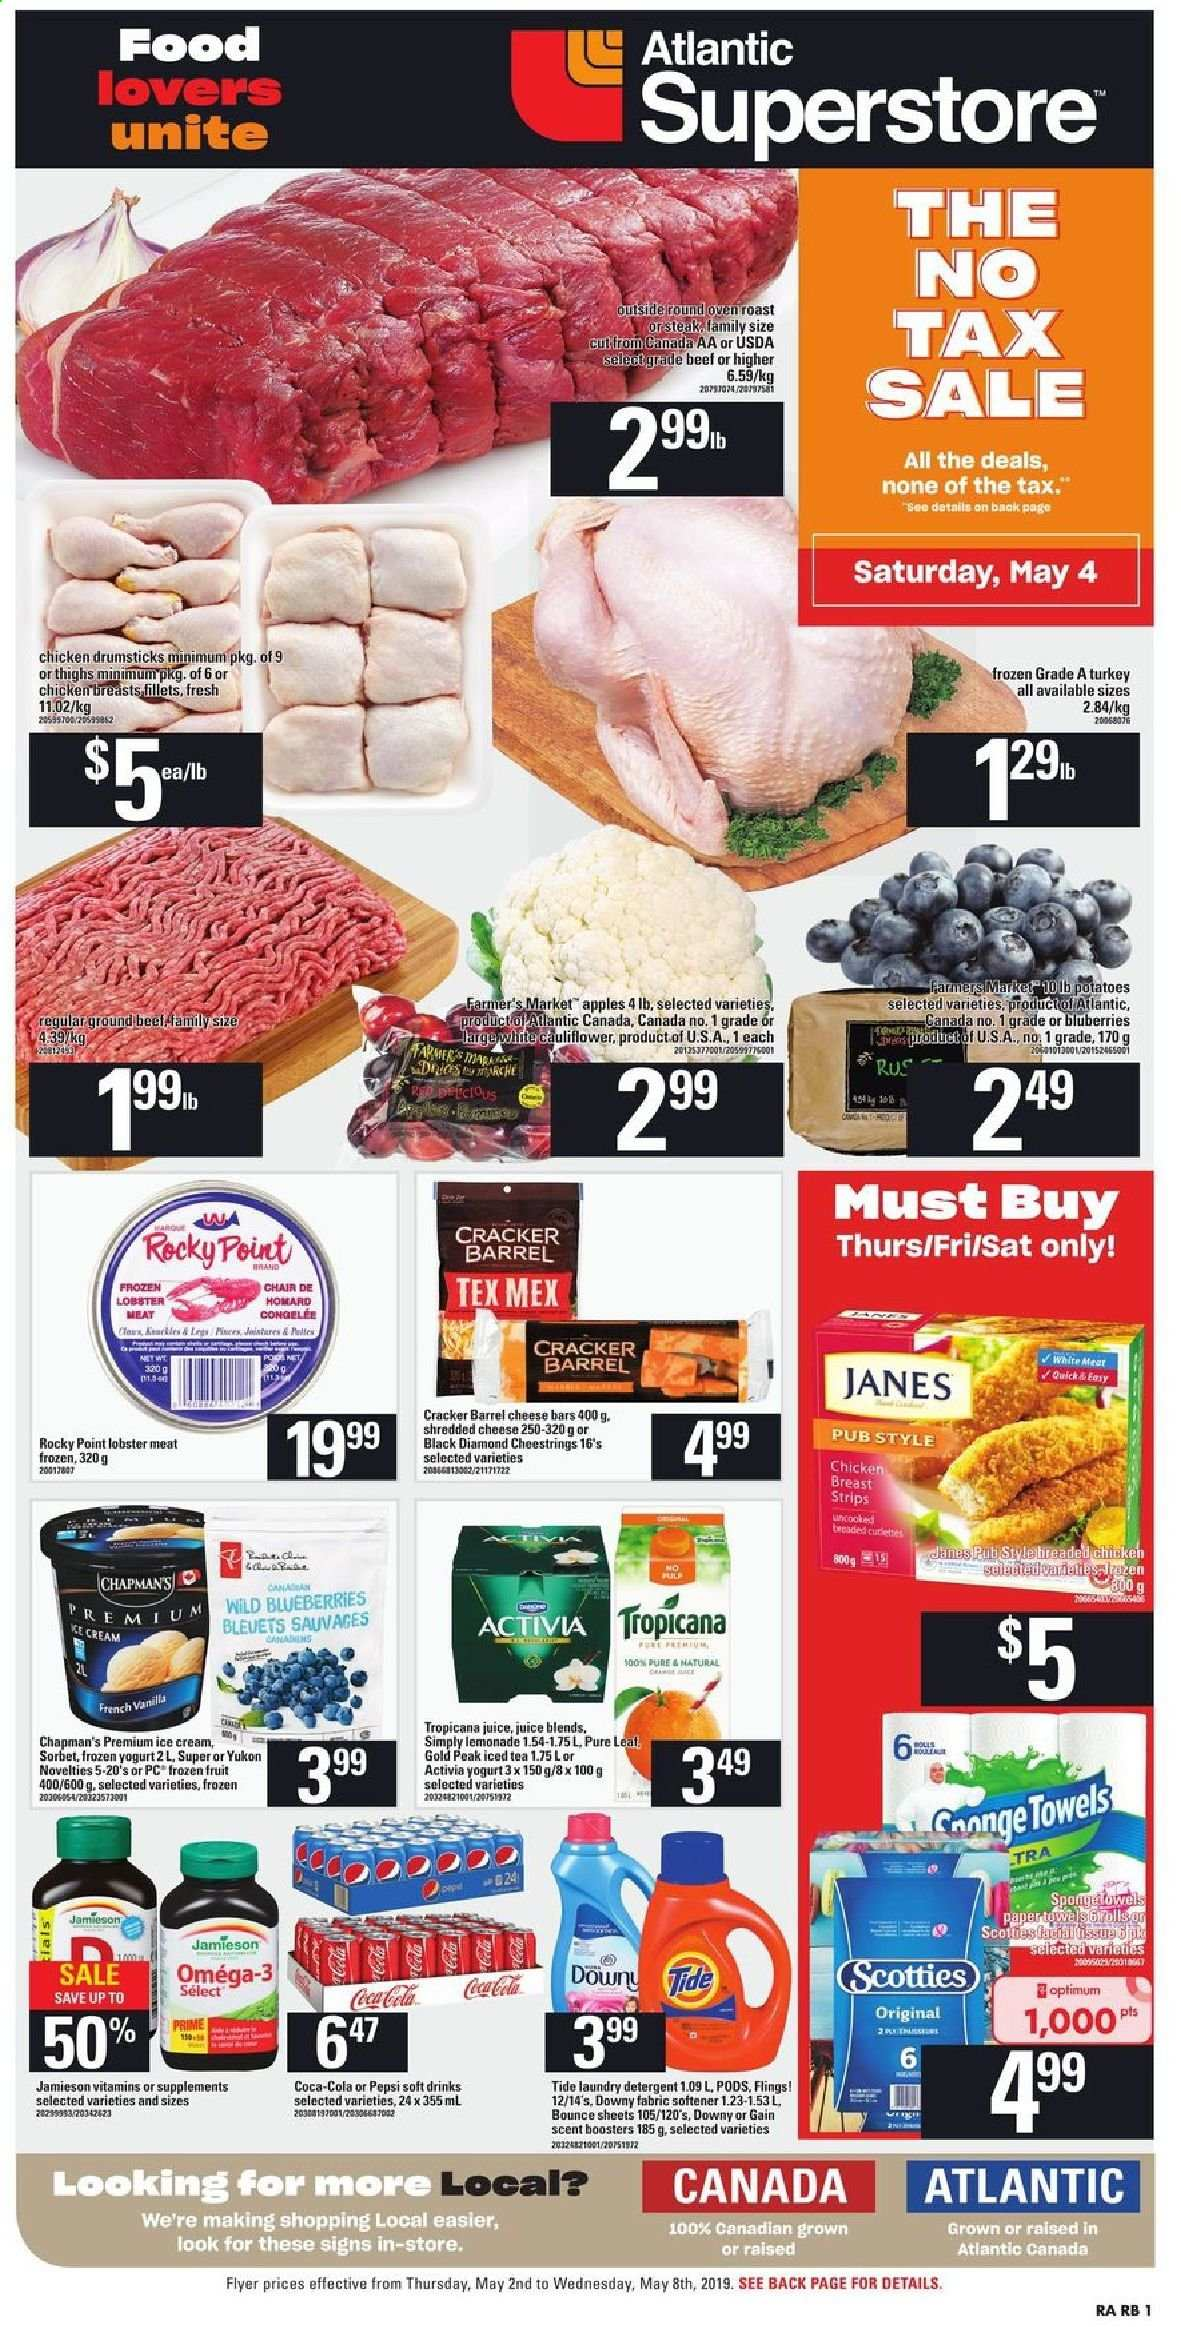 Atlantic Superstore Flyer - May 02, 2019 - May 08, 2019 - Sales products - apples, beef meat, blueberries, bounce, cream, detergent, downy, frozen, lemonade, lobster, shredded cheese, tea, tide, turkey, yogurt, chair, ice cream, potatoes, chicken, chicken breast, chicken drumsticks, pepsi, omega-3, cheese, juice, iced tea, softener, cracker, activia, jamieson, tropicana. Page 1.